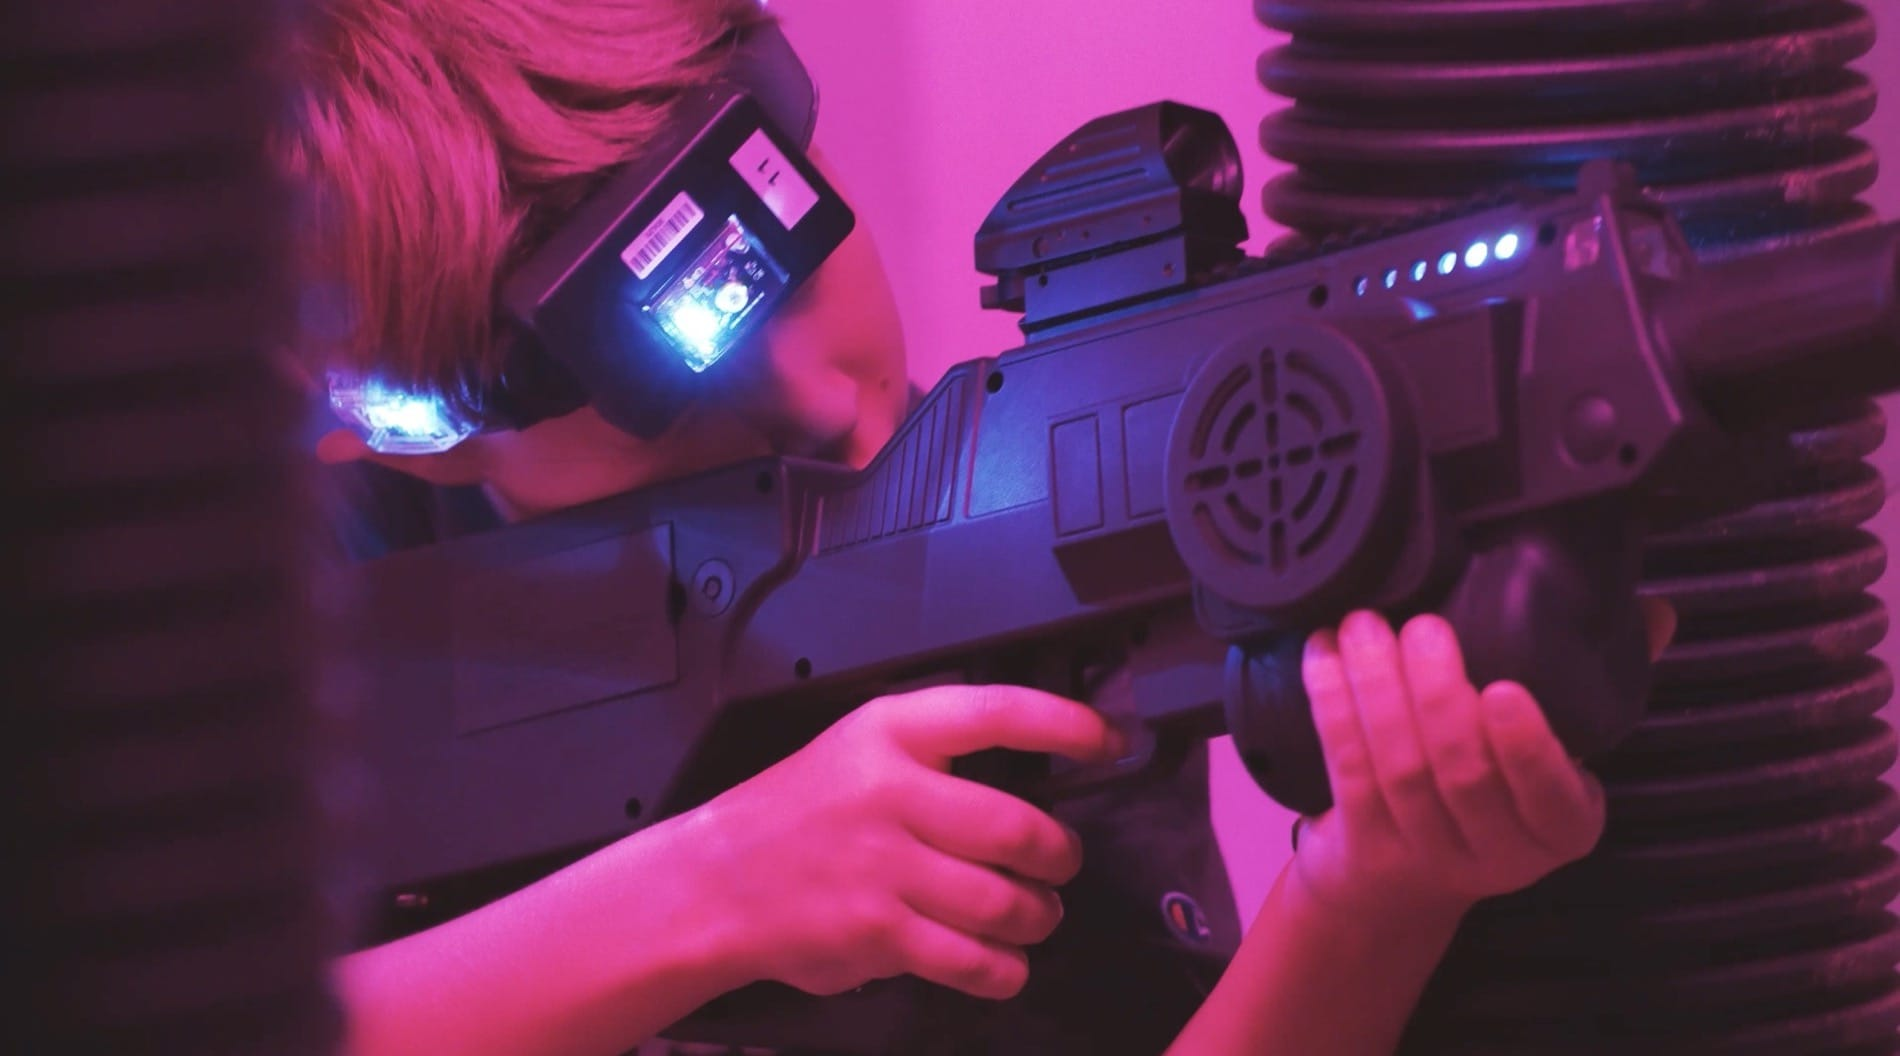 New Laser Tag Arena Opens at LTA Depot